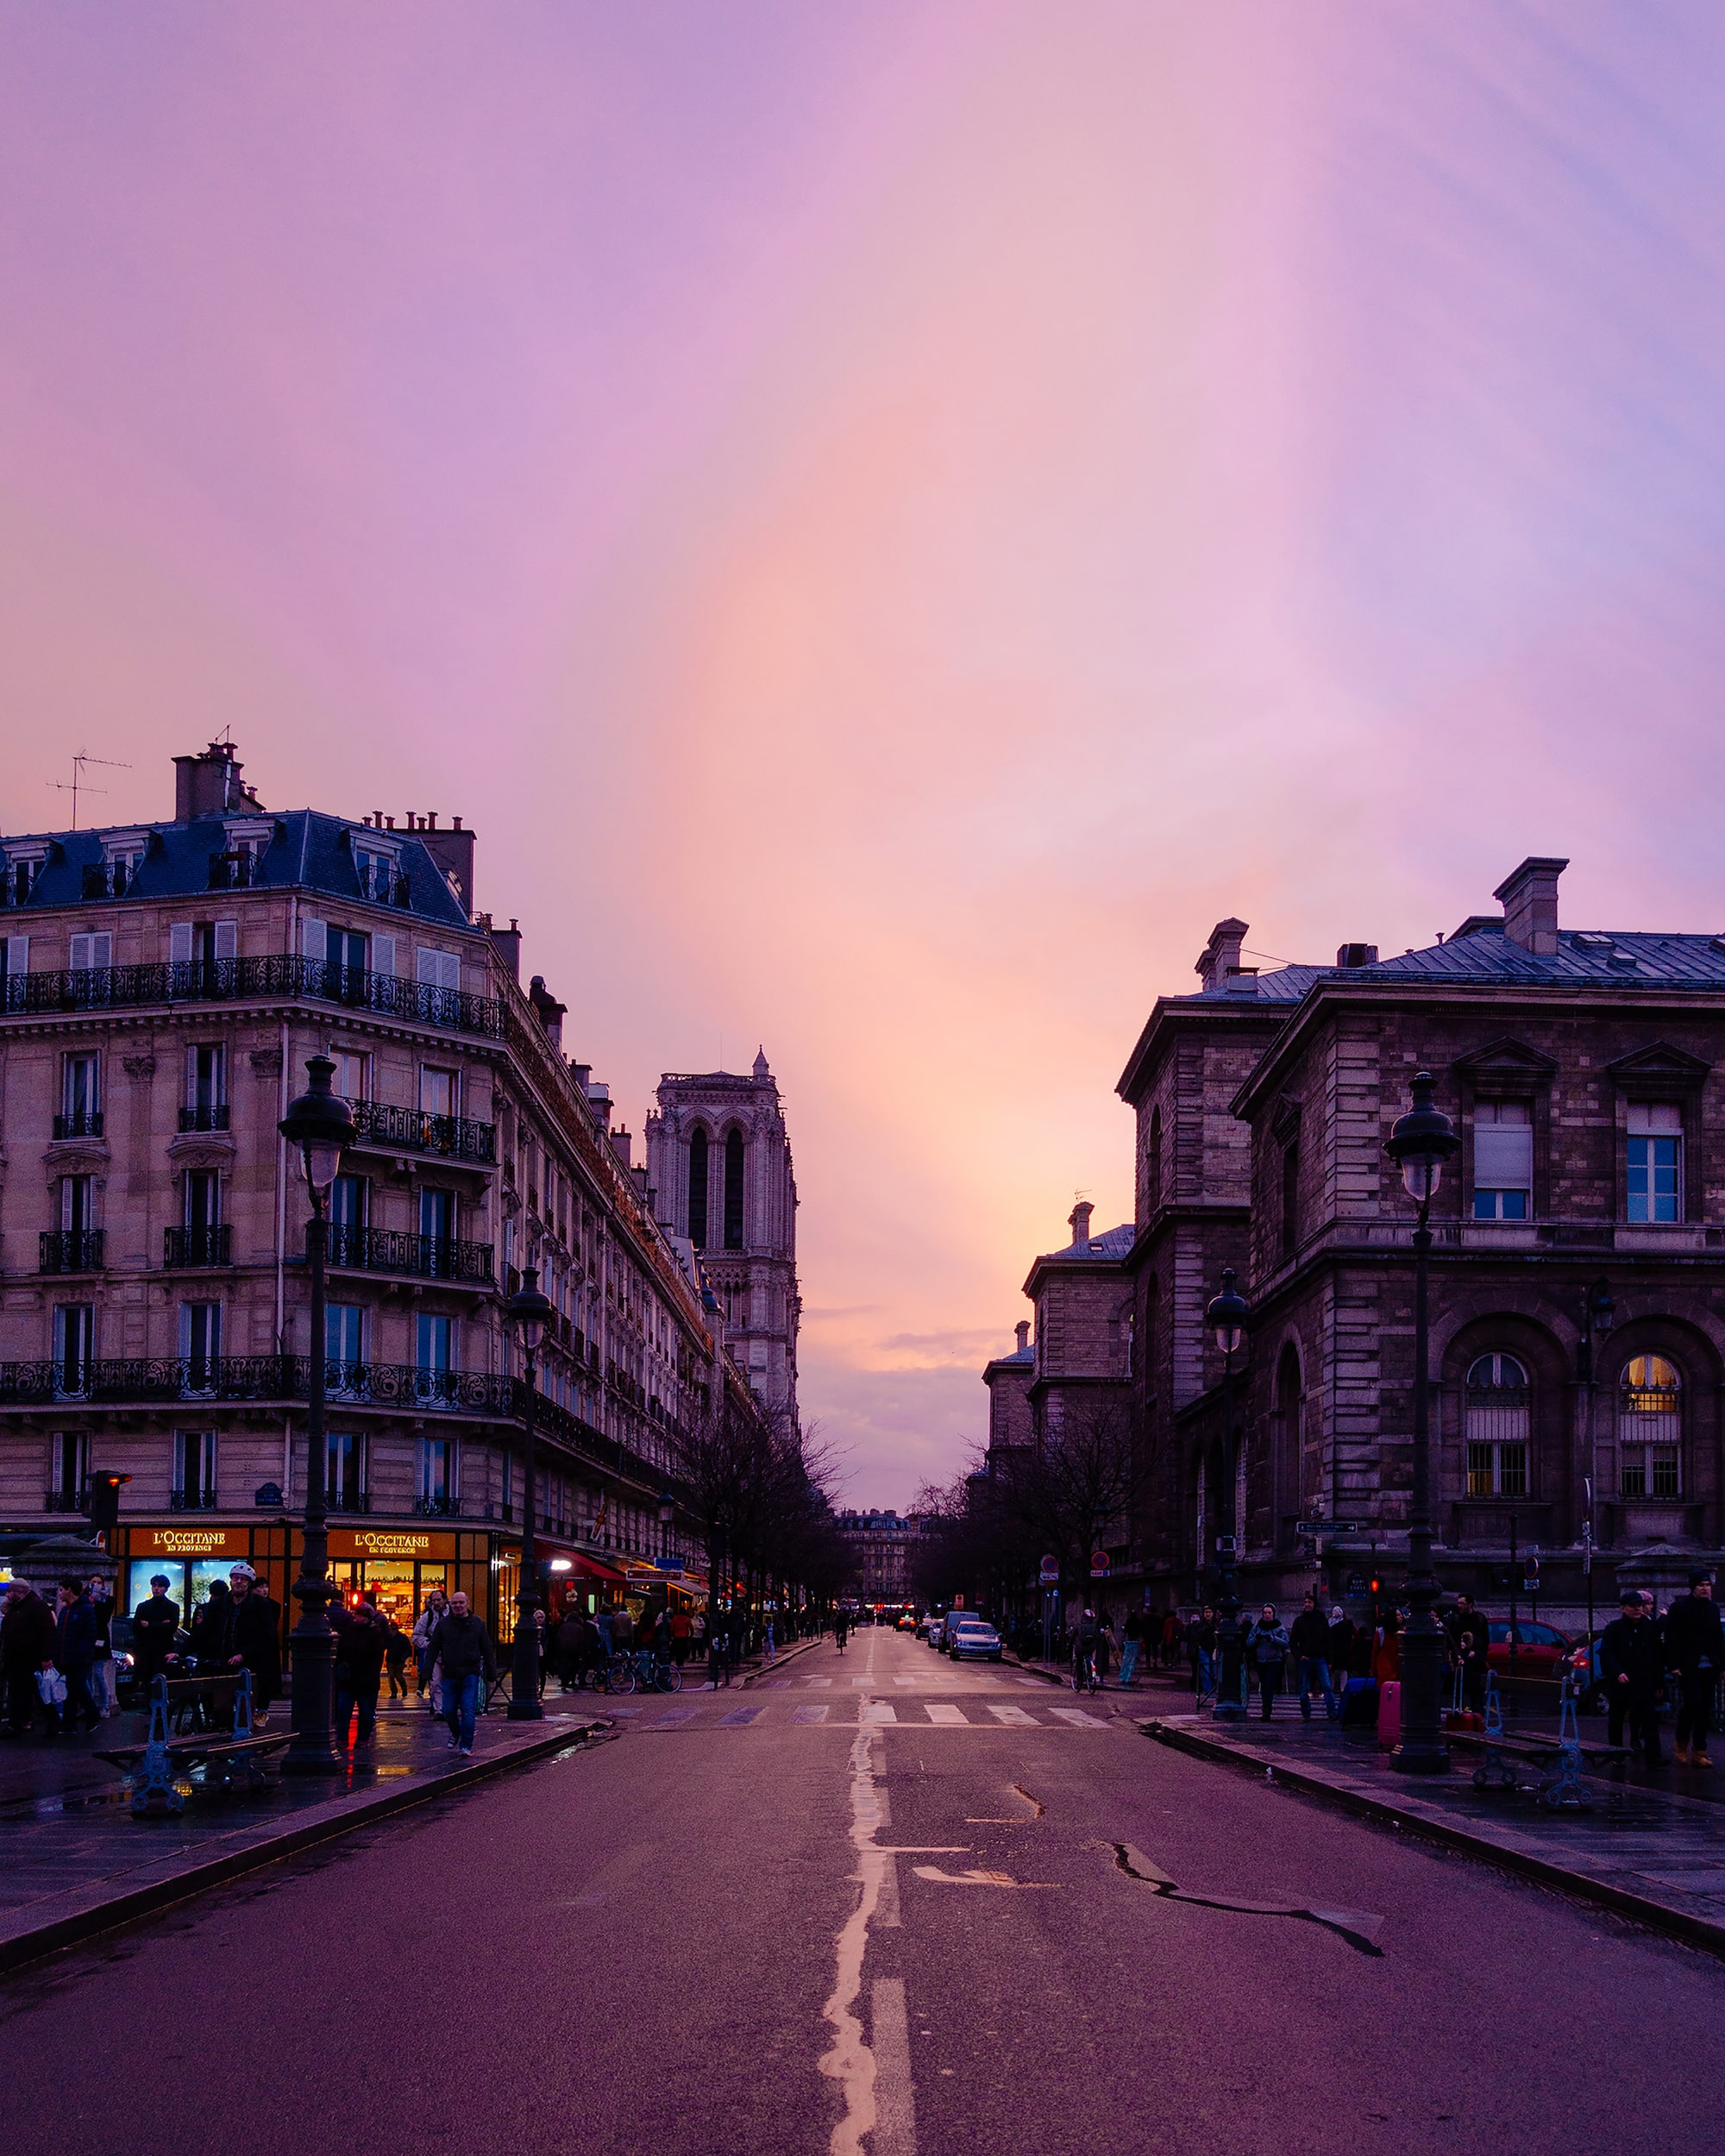 vutheara kham sony rx100m5 a parisian street at dusk showing a soft pink hue